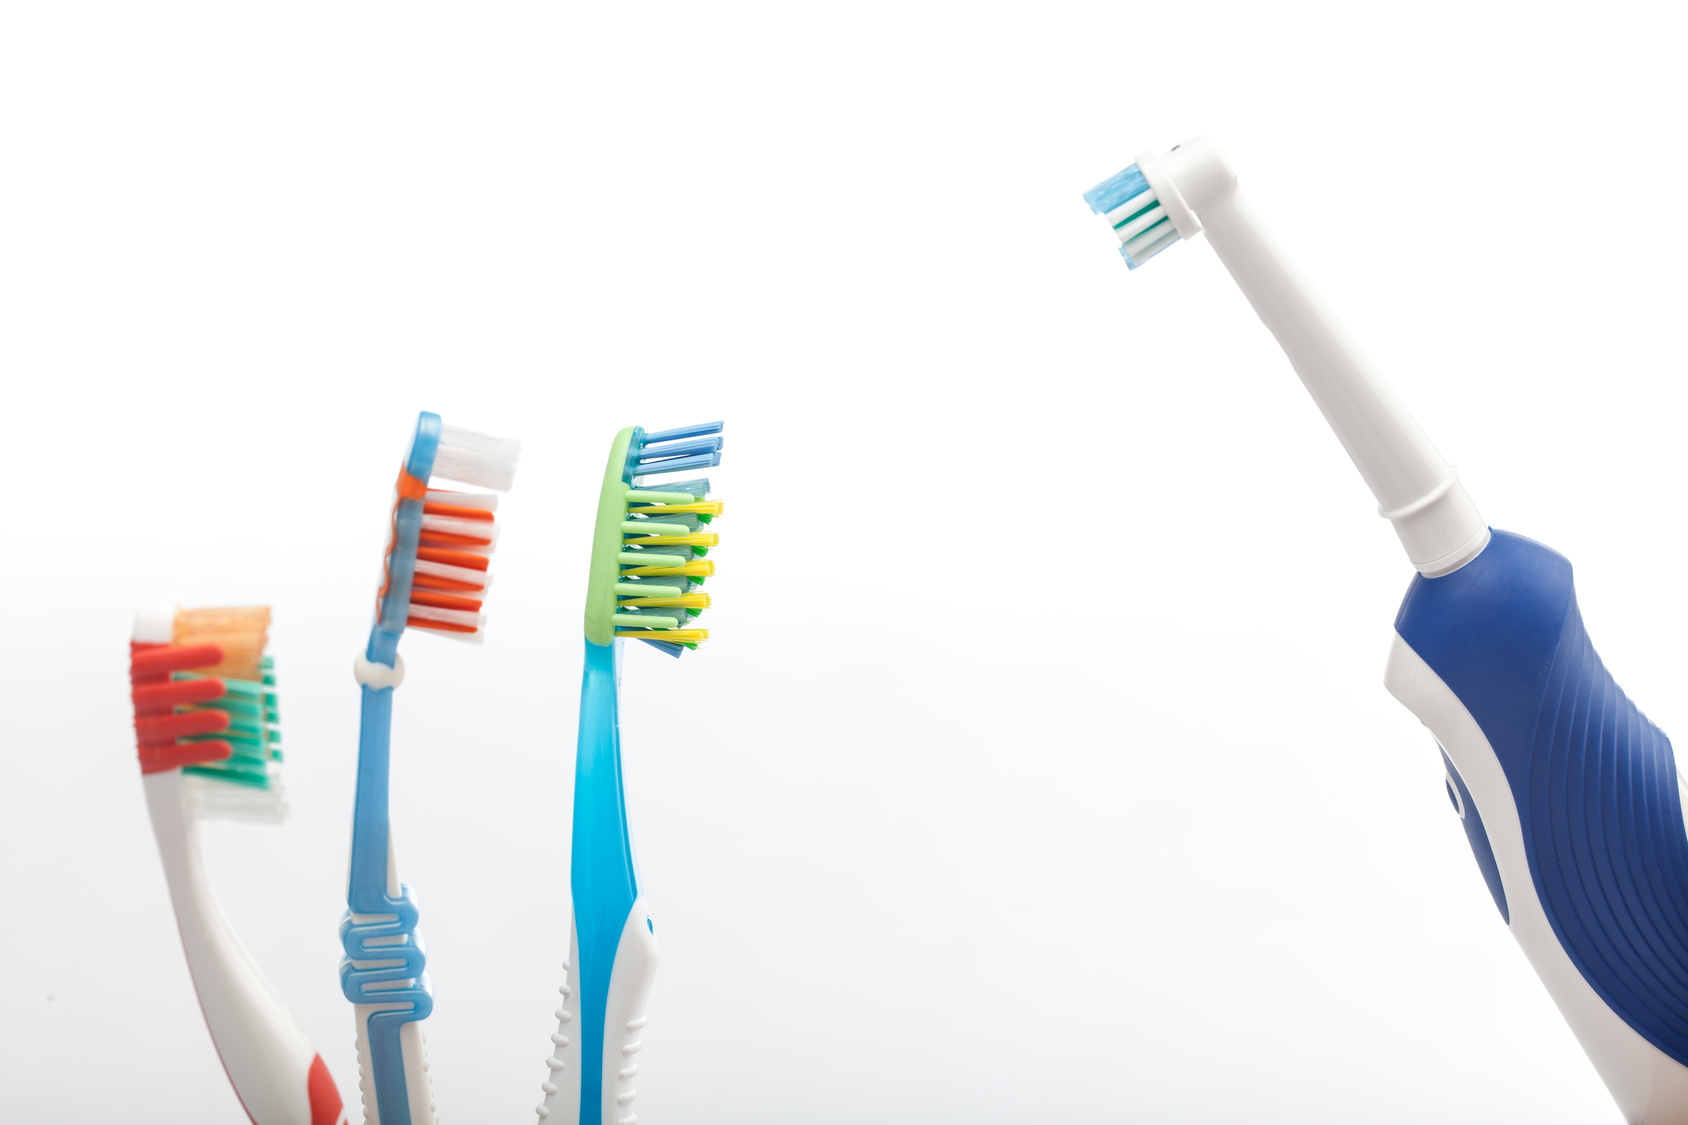 Should you use a manual or an electric toothbrush?